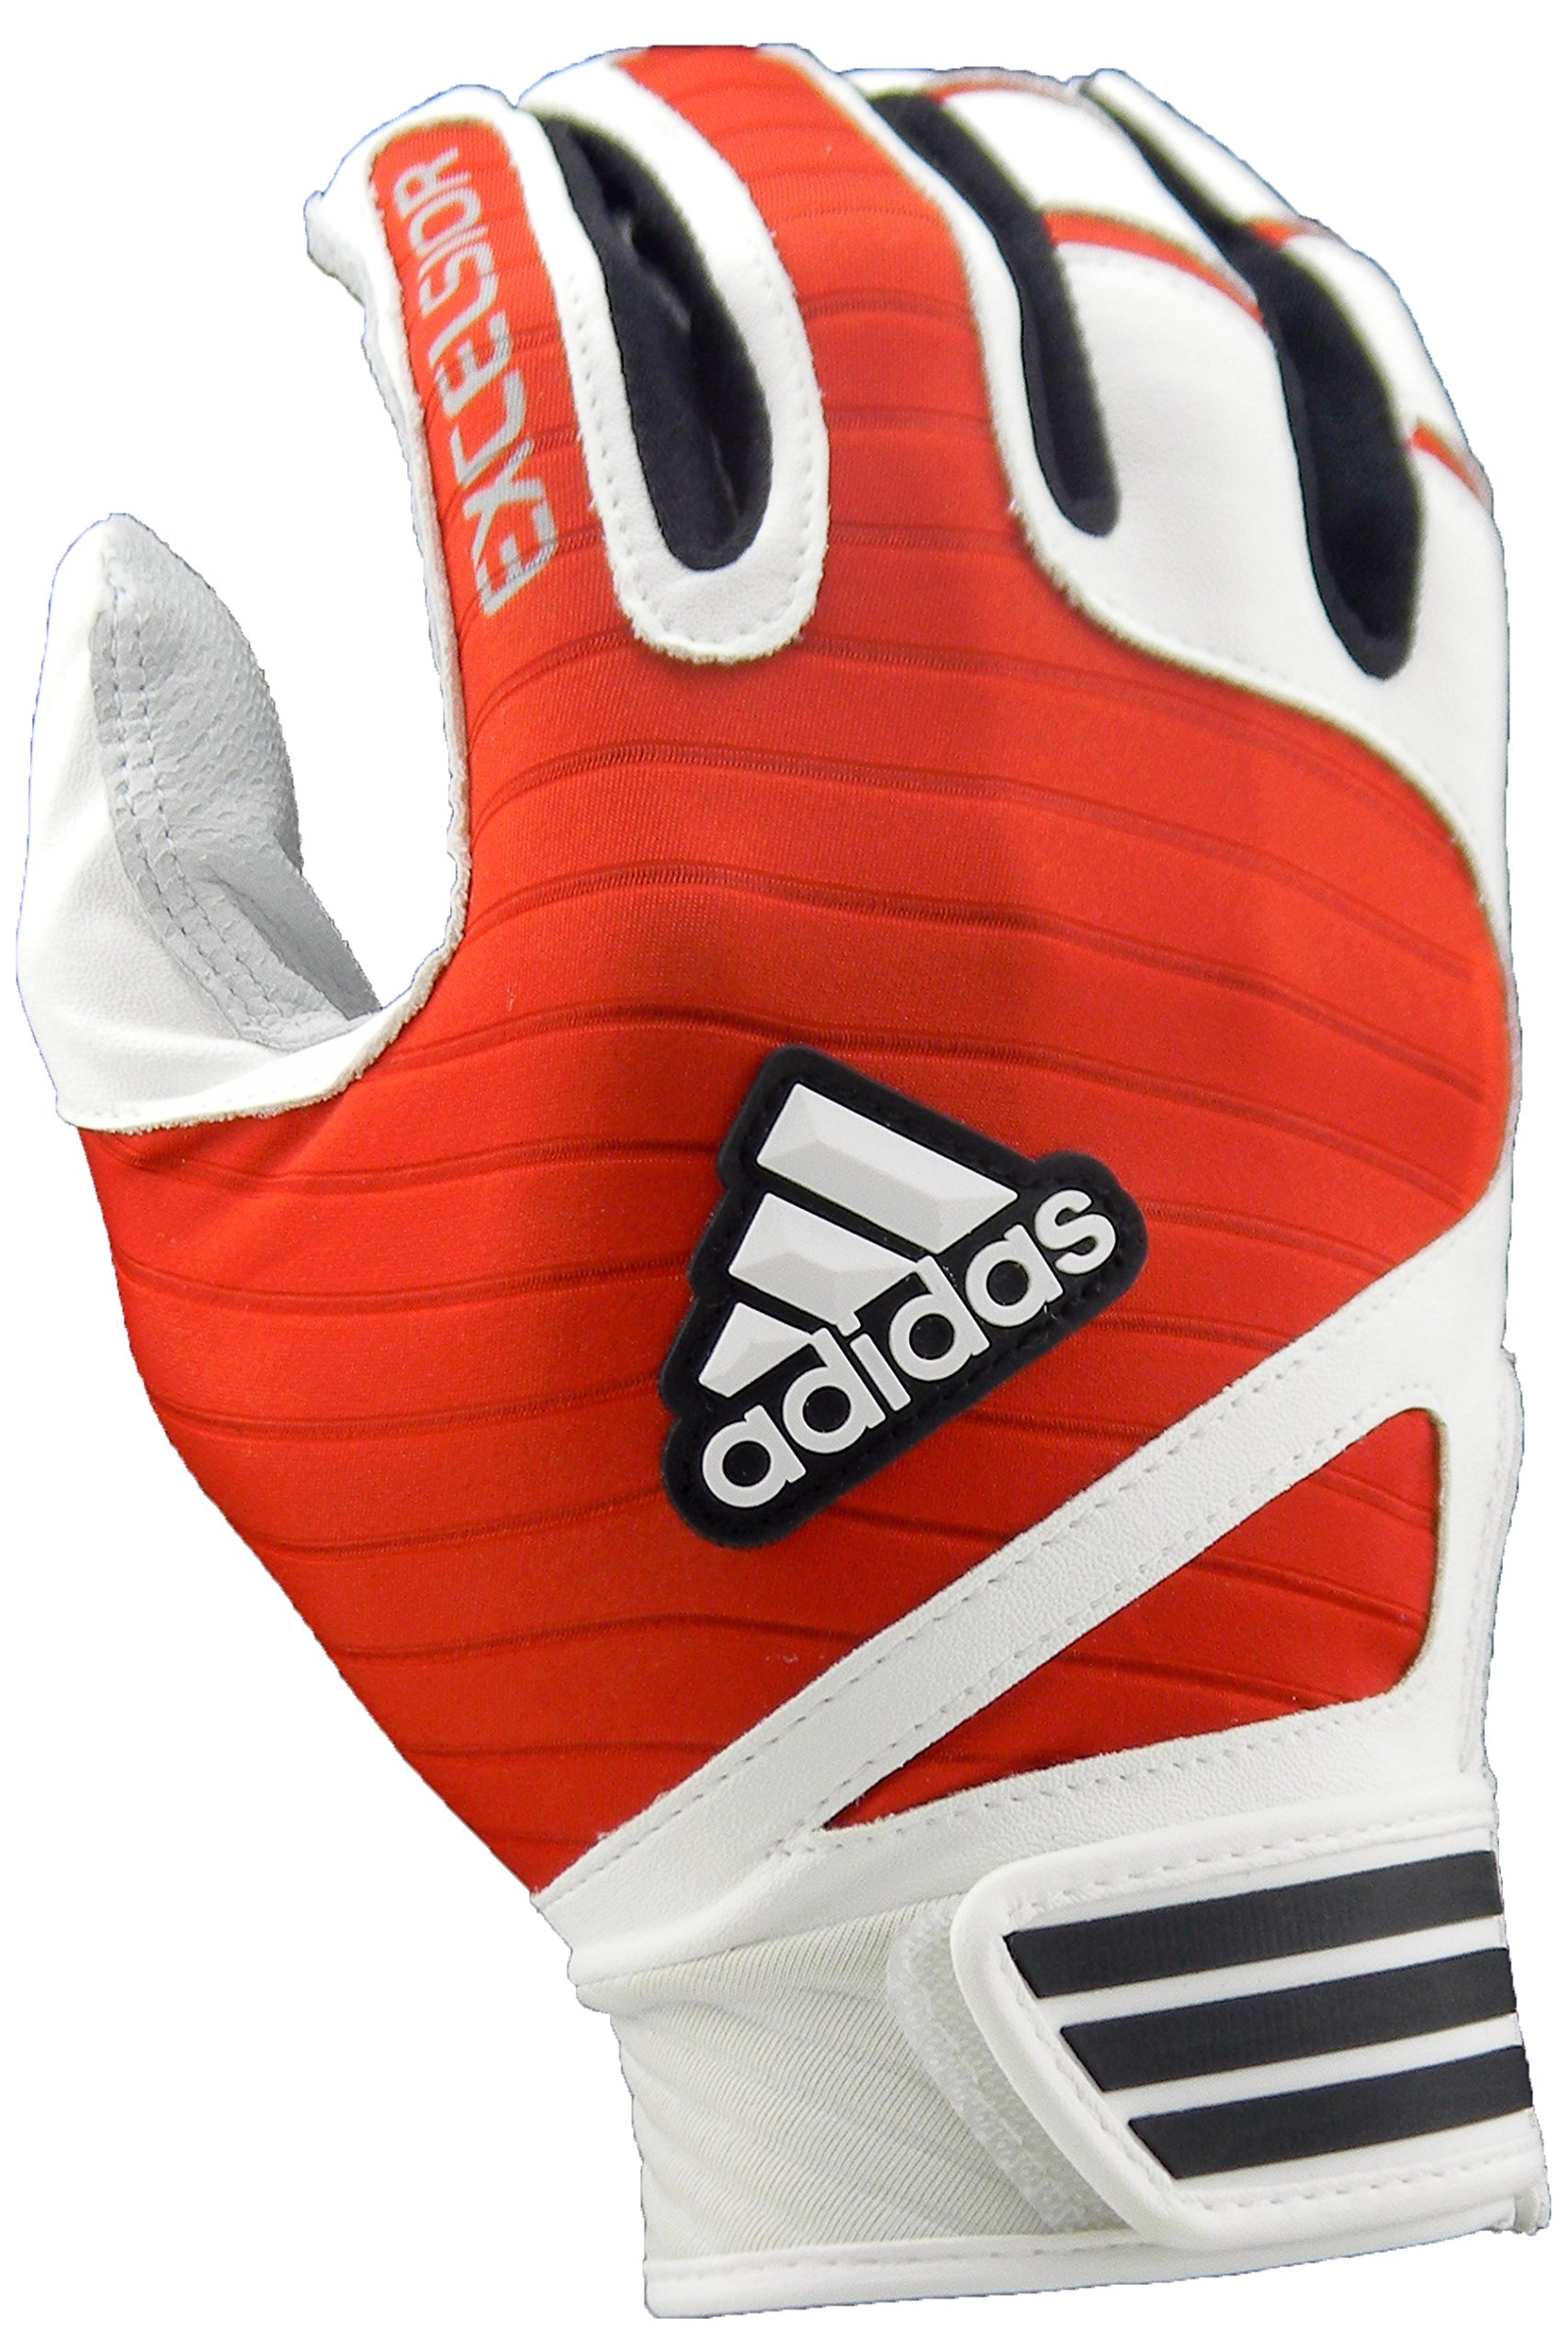 adidas Excelsior Batting Gloves (Pair), White/Red, Large